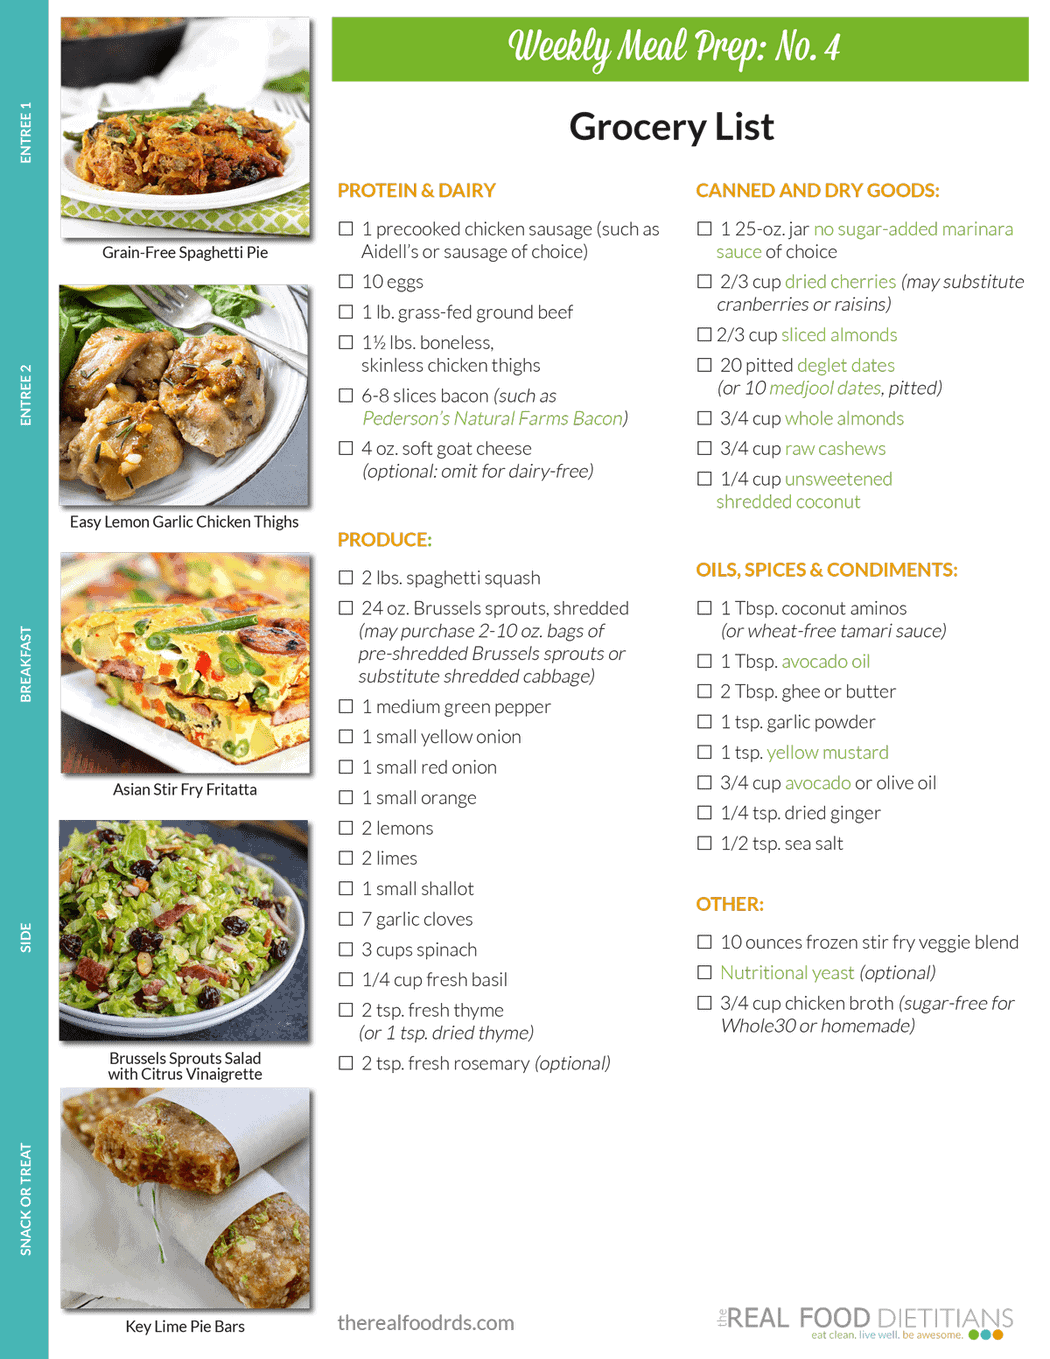 Weekly Meal Prep Menu: No. 4 | The Real Food Dietitians | Https: